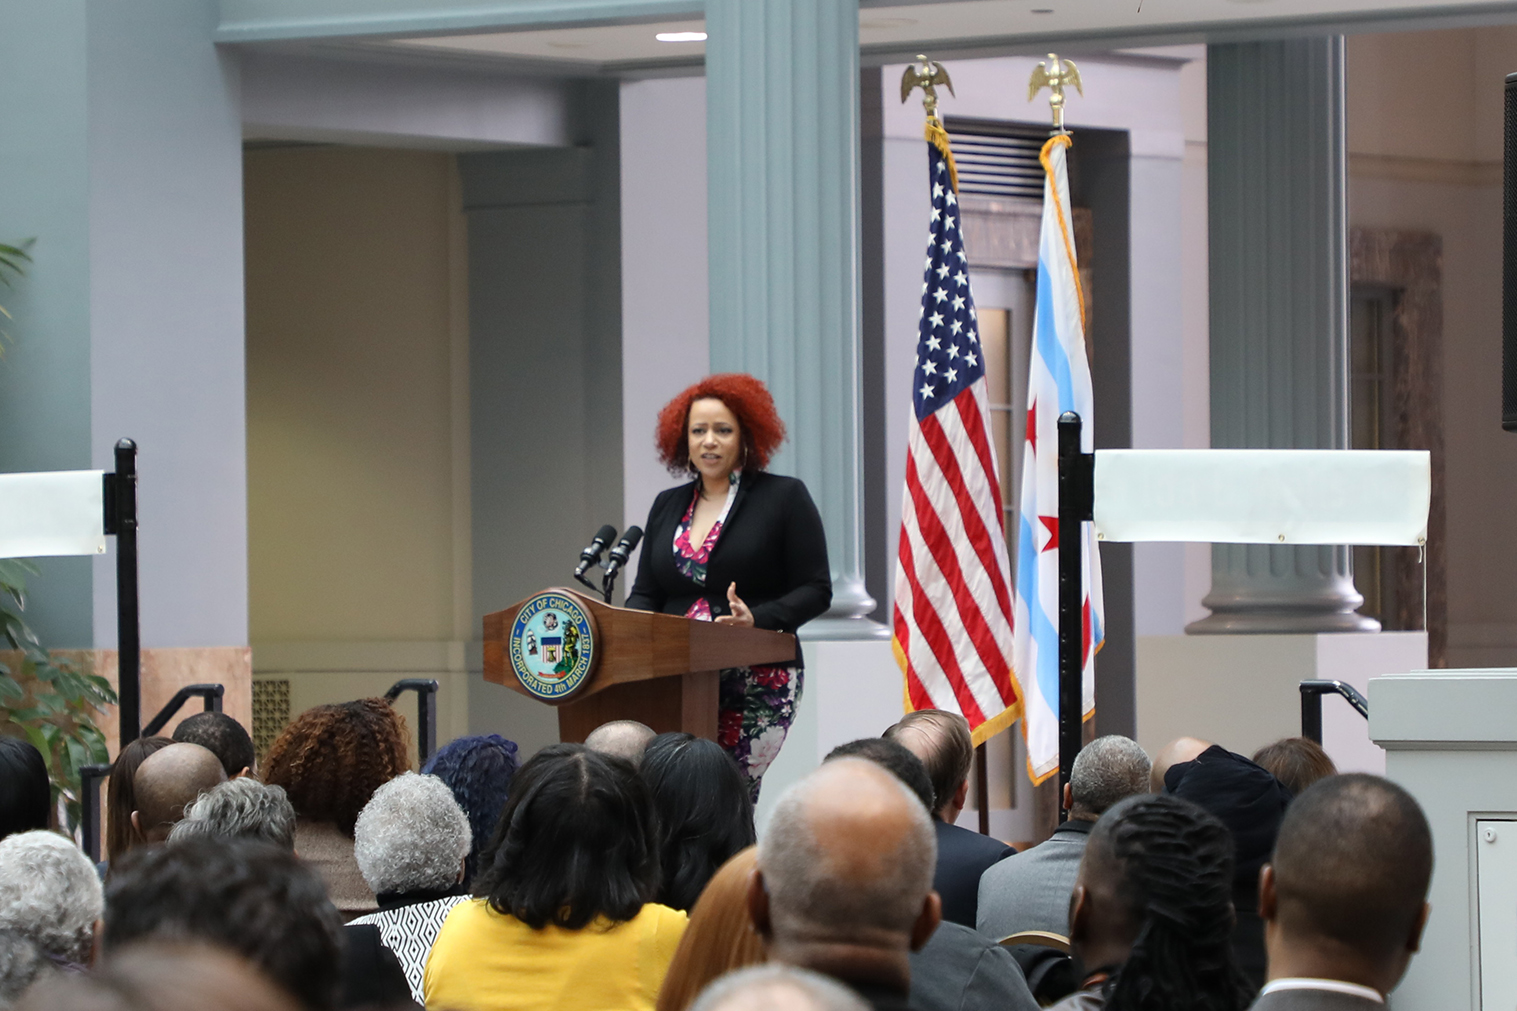 Nikole Hannah-Jones, a New York Times journalist and cofounder of the Ida B. Wells Society for Investigative Reporting, talks about Wells' dangerous, groundbreaking work as a journalist. (Arionne Nettles/WBEZ)